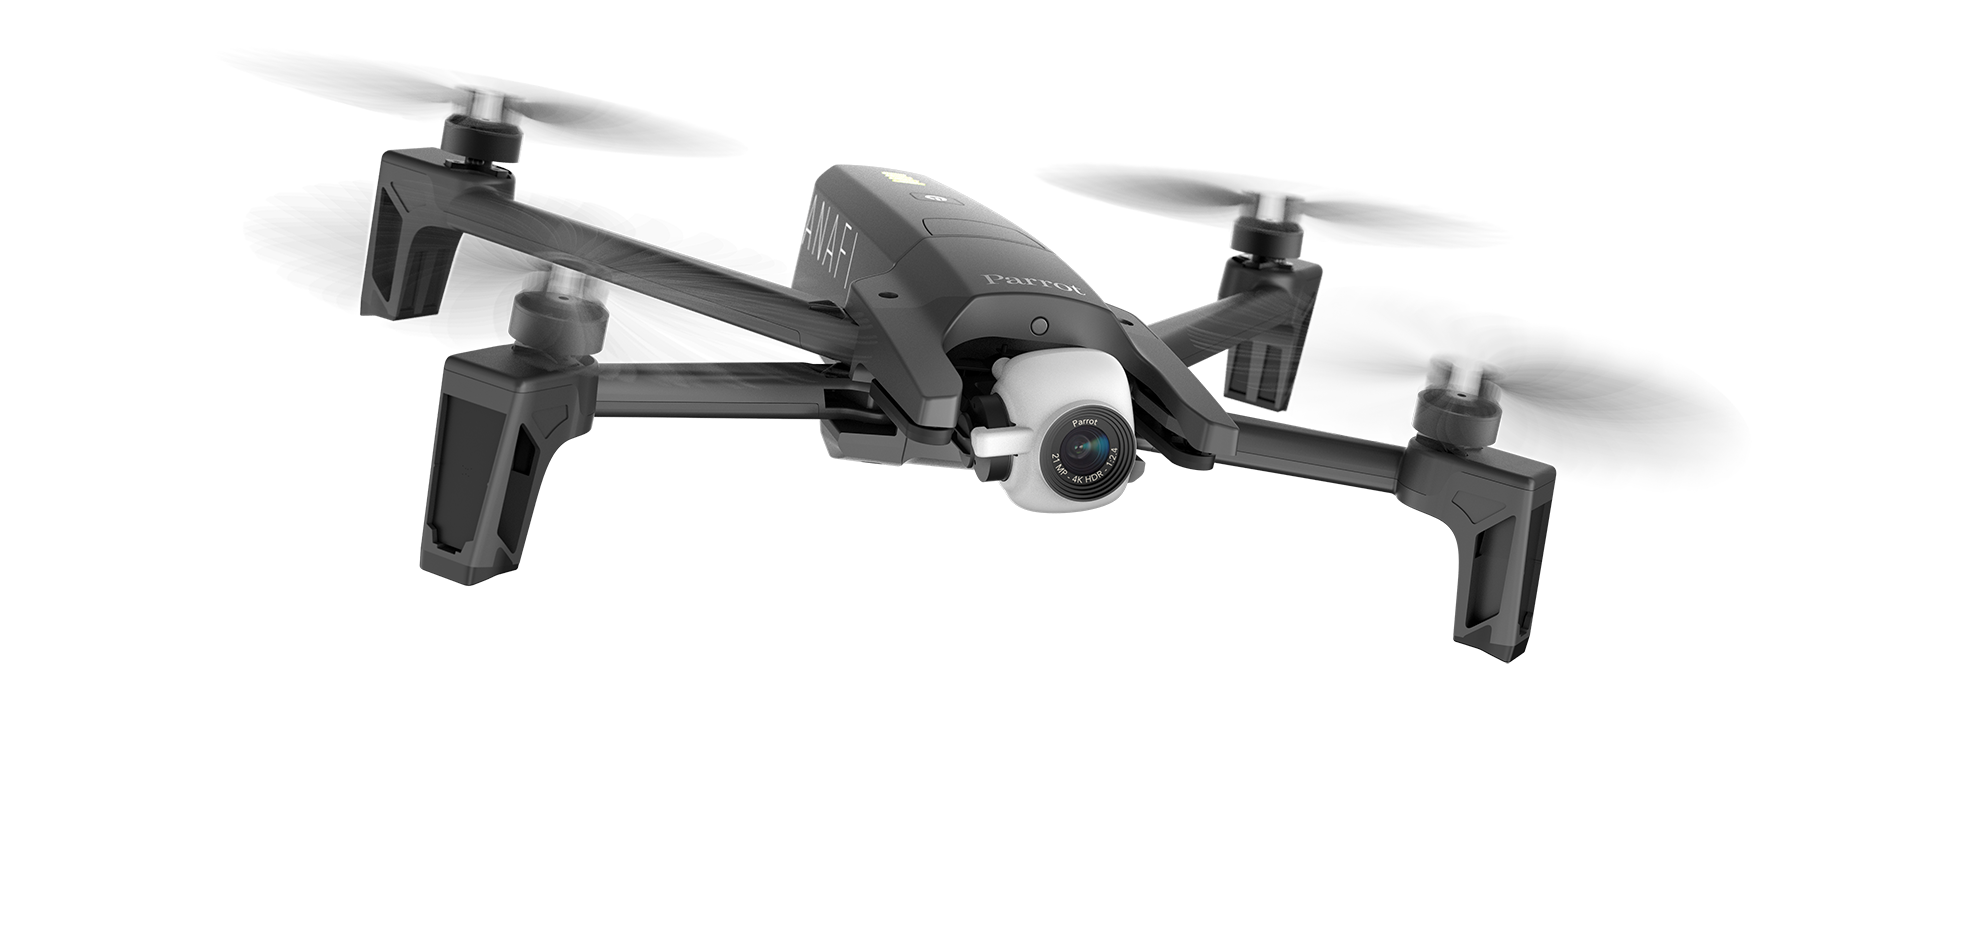 uploads drone drone PNG201 5